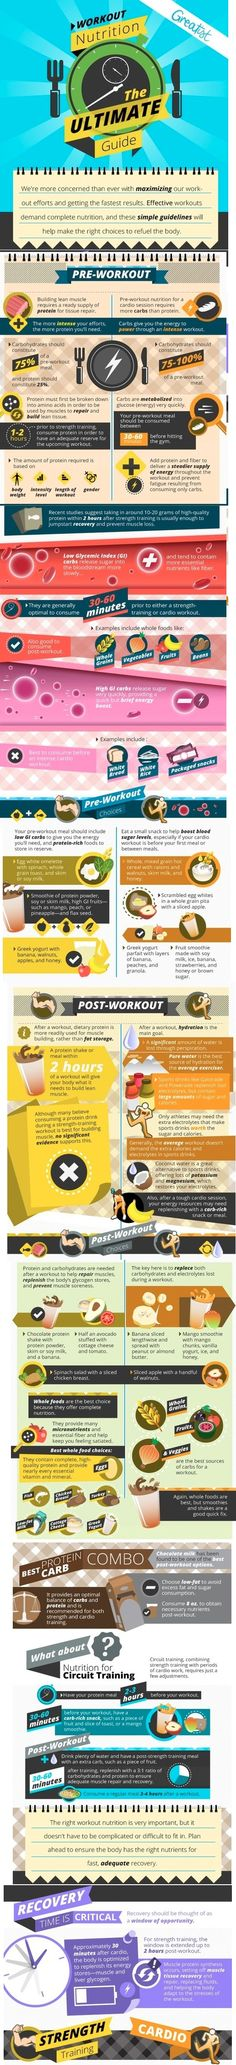 40 Best Pre / Post Workout Recovery Tips images | Health